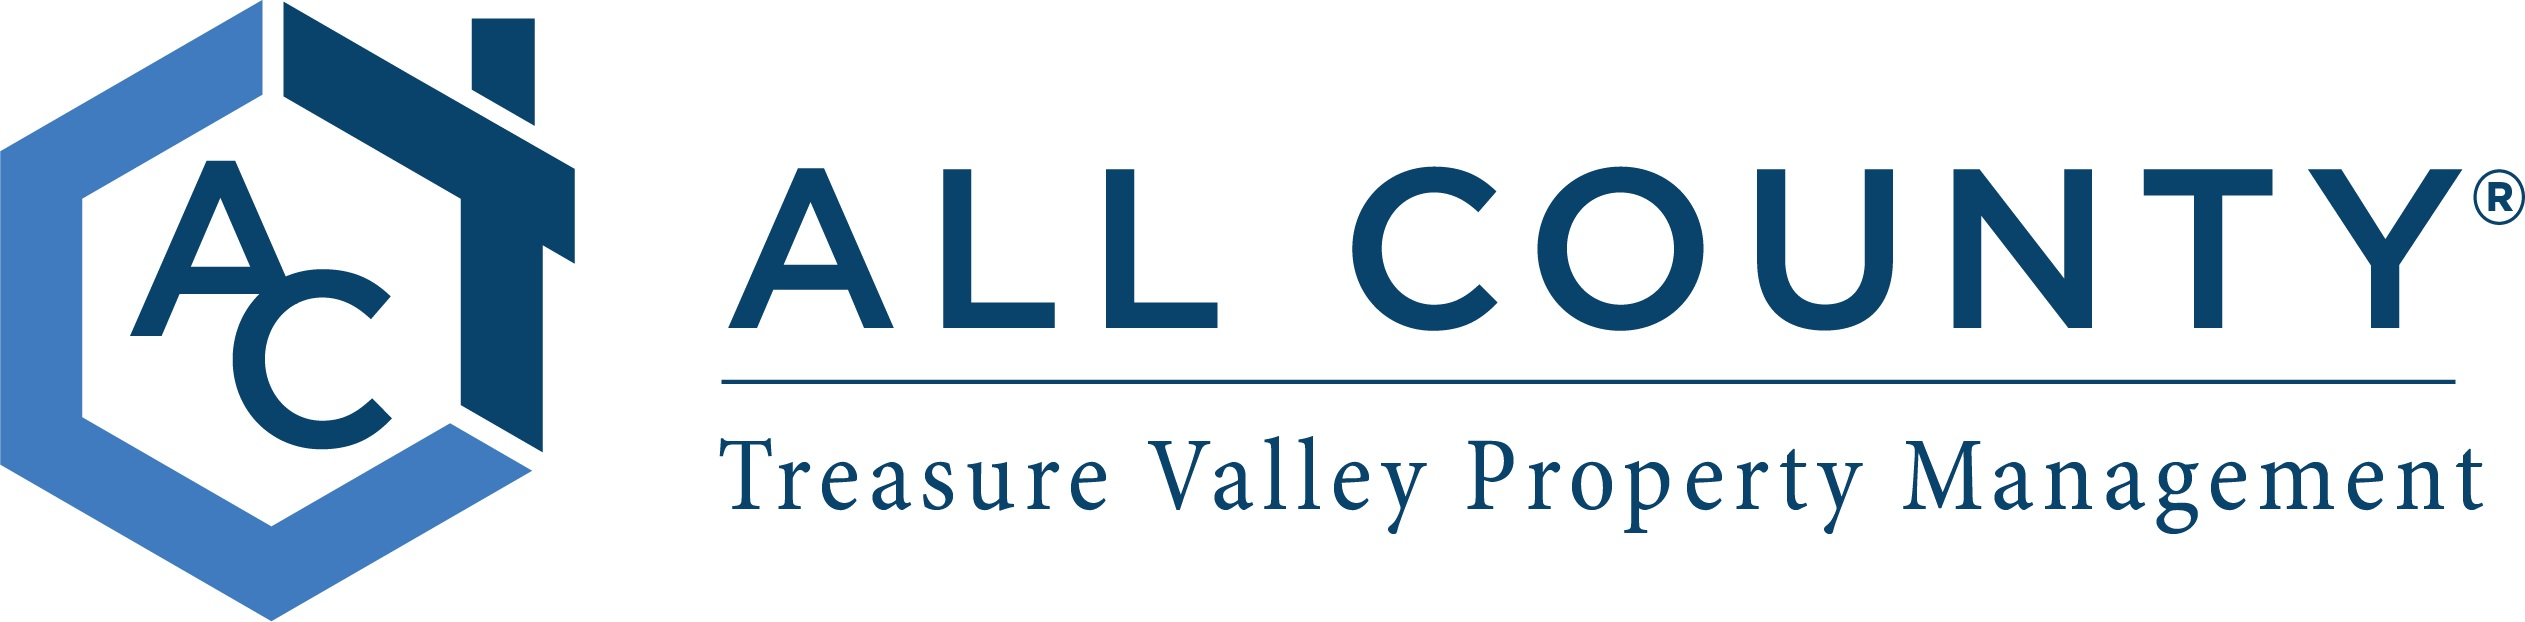 All County Treasure Valley Property Management